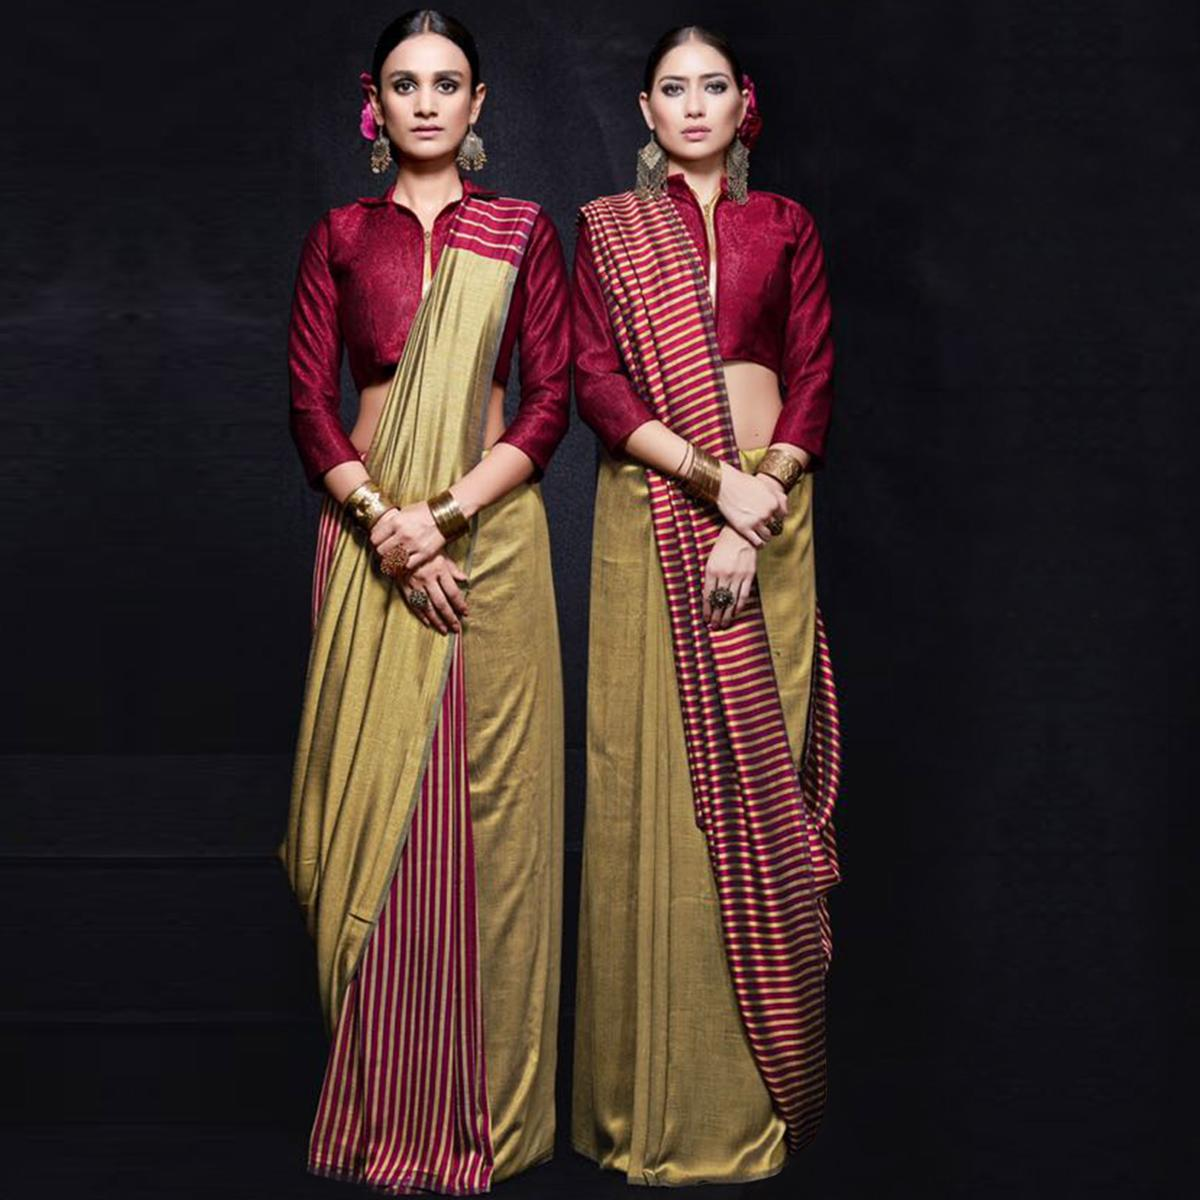 Starring Beige-Maroon Colored Reversible Jacquard Saree